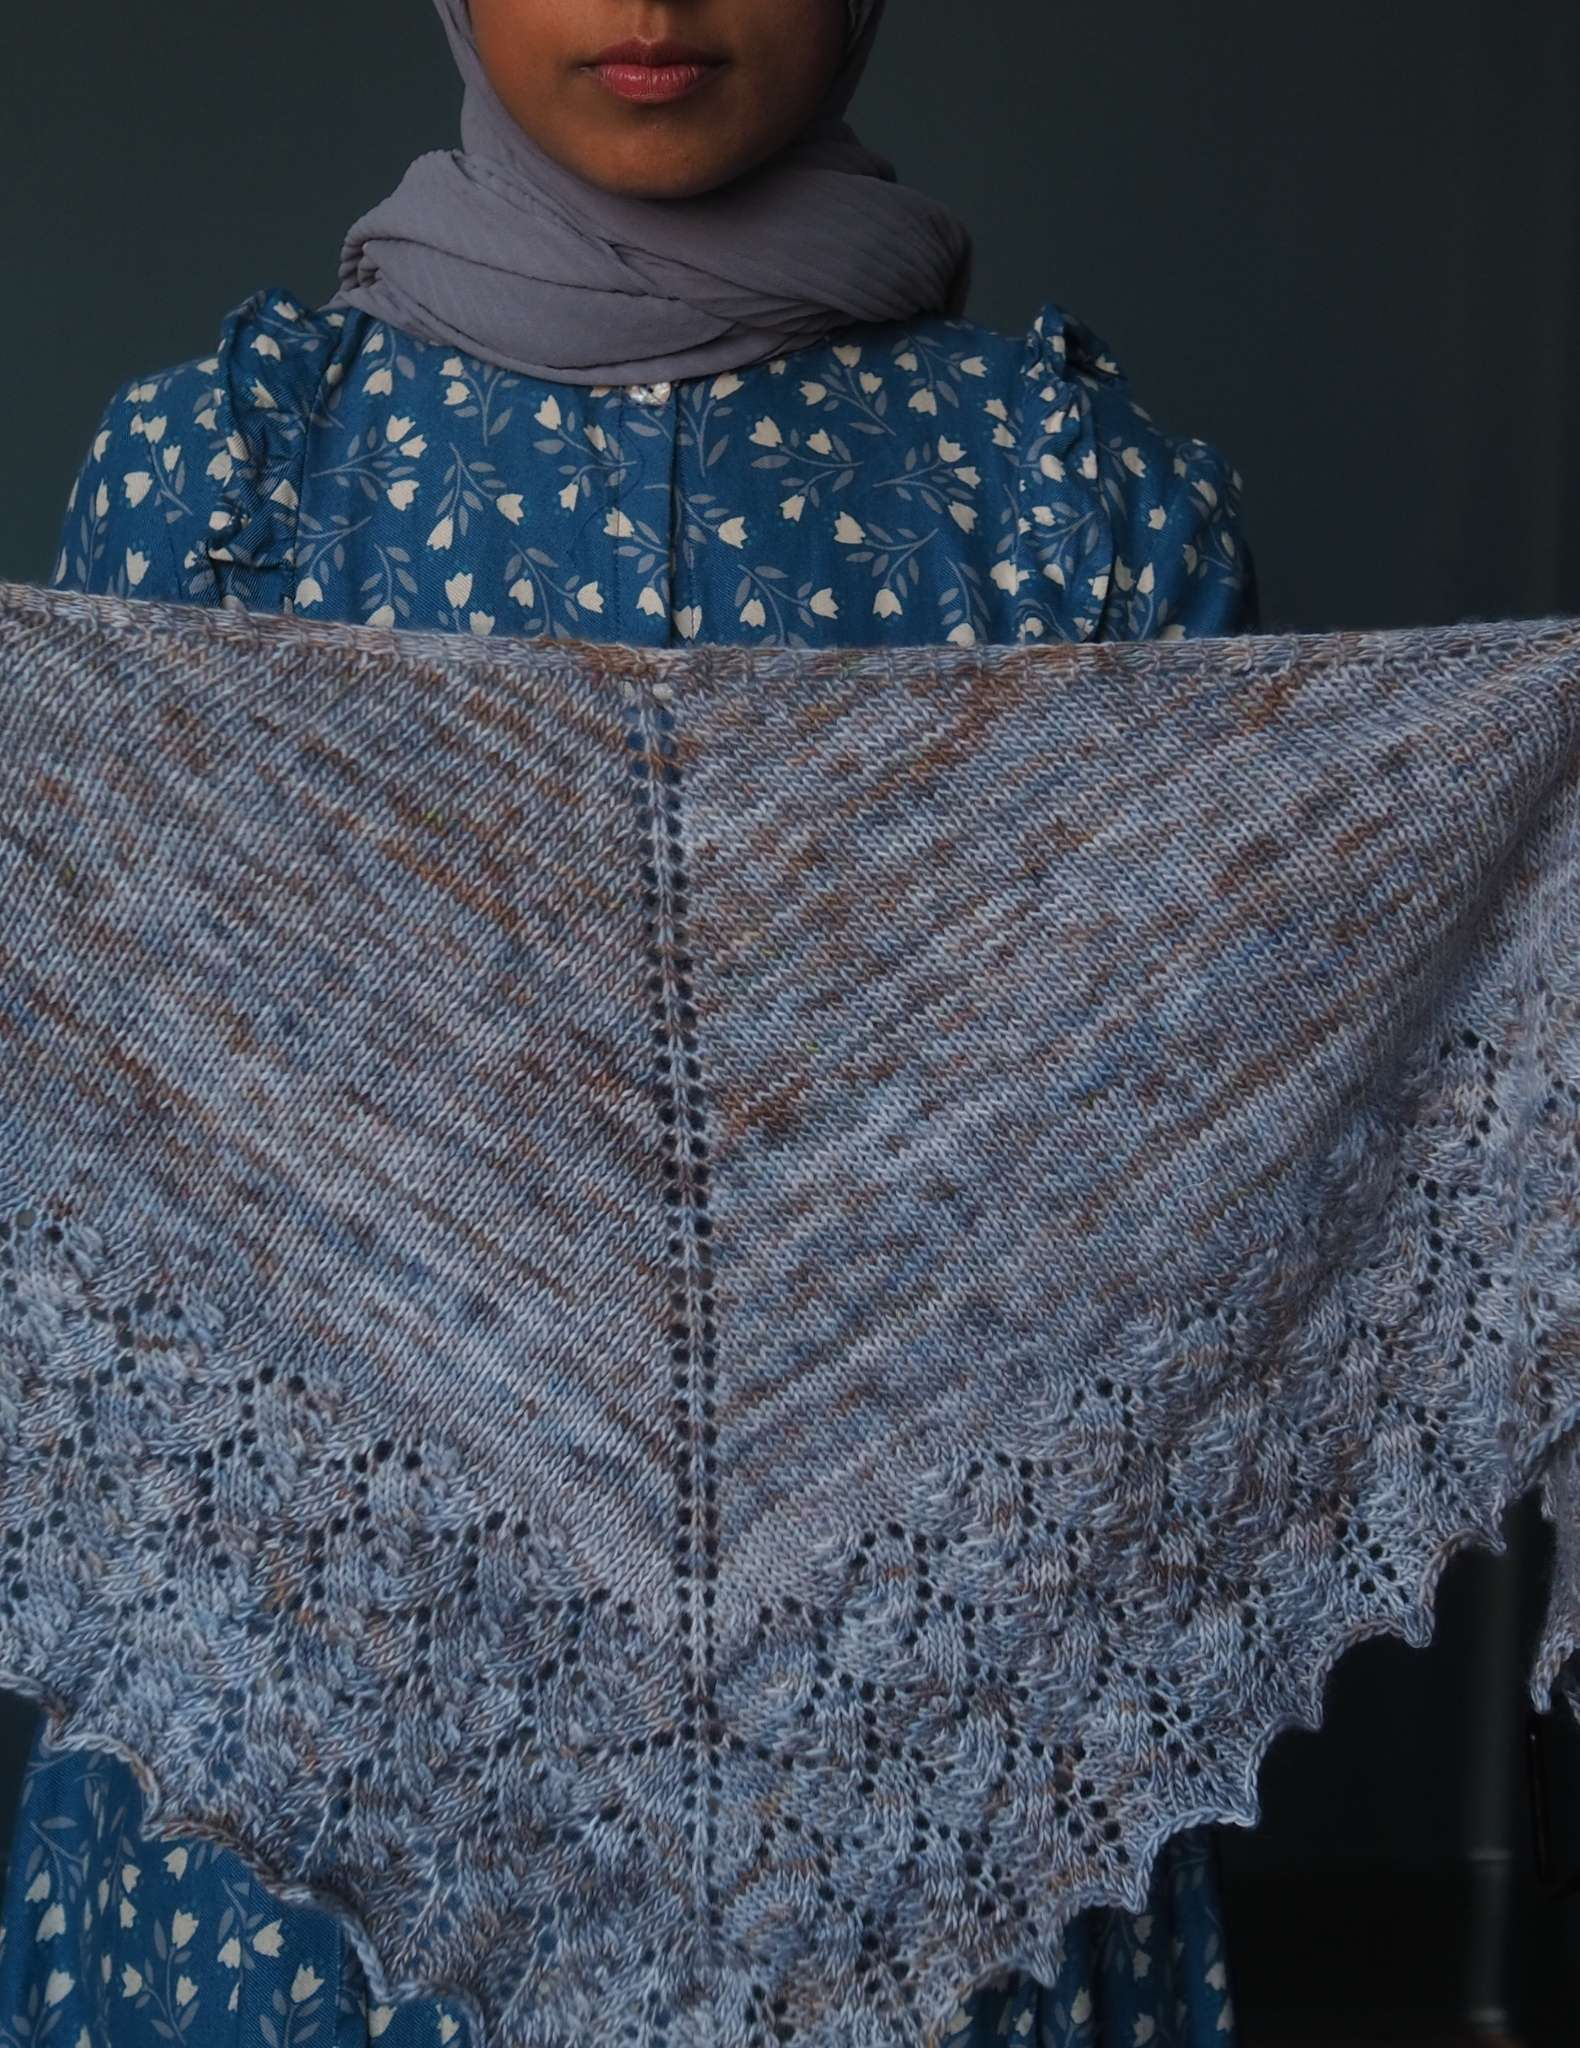 A brown woman in a hijab wearing a floral blue dress holds a blue and grey triangular shawl in front of her.